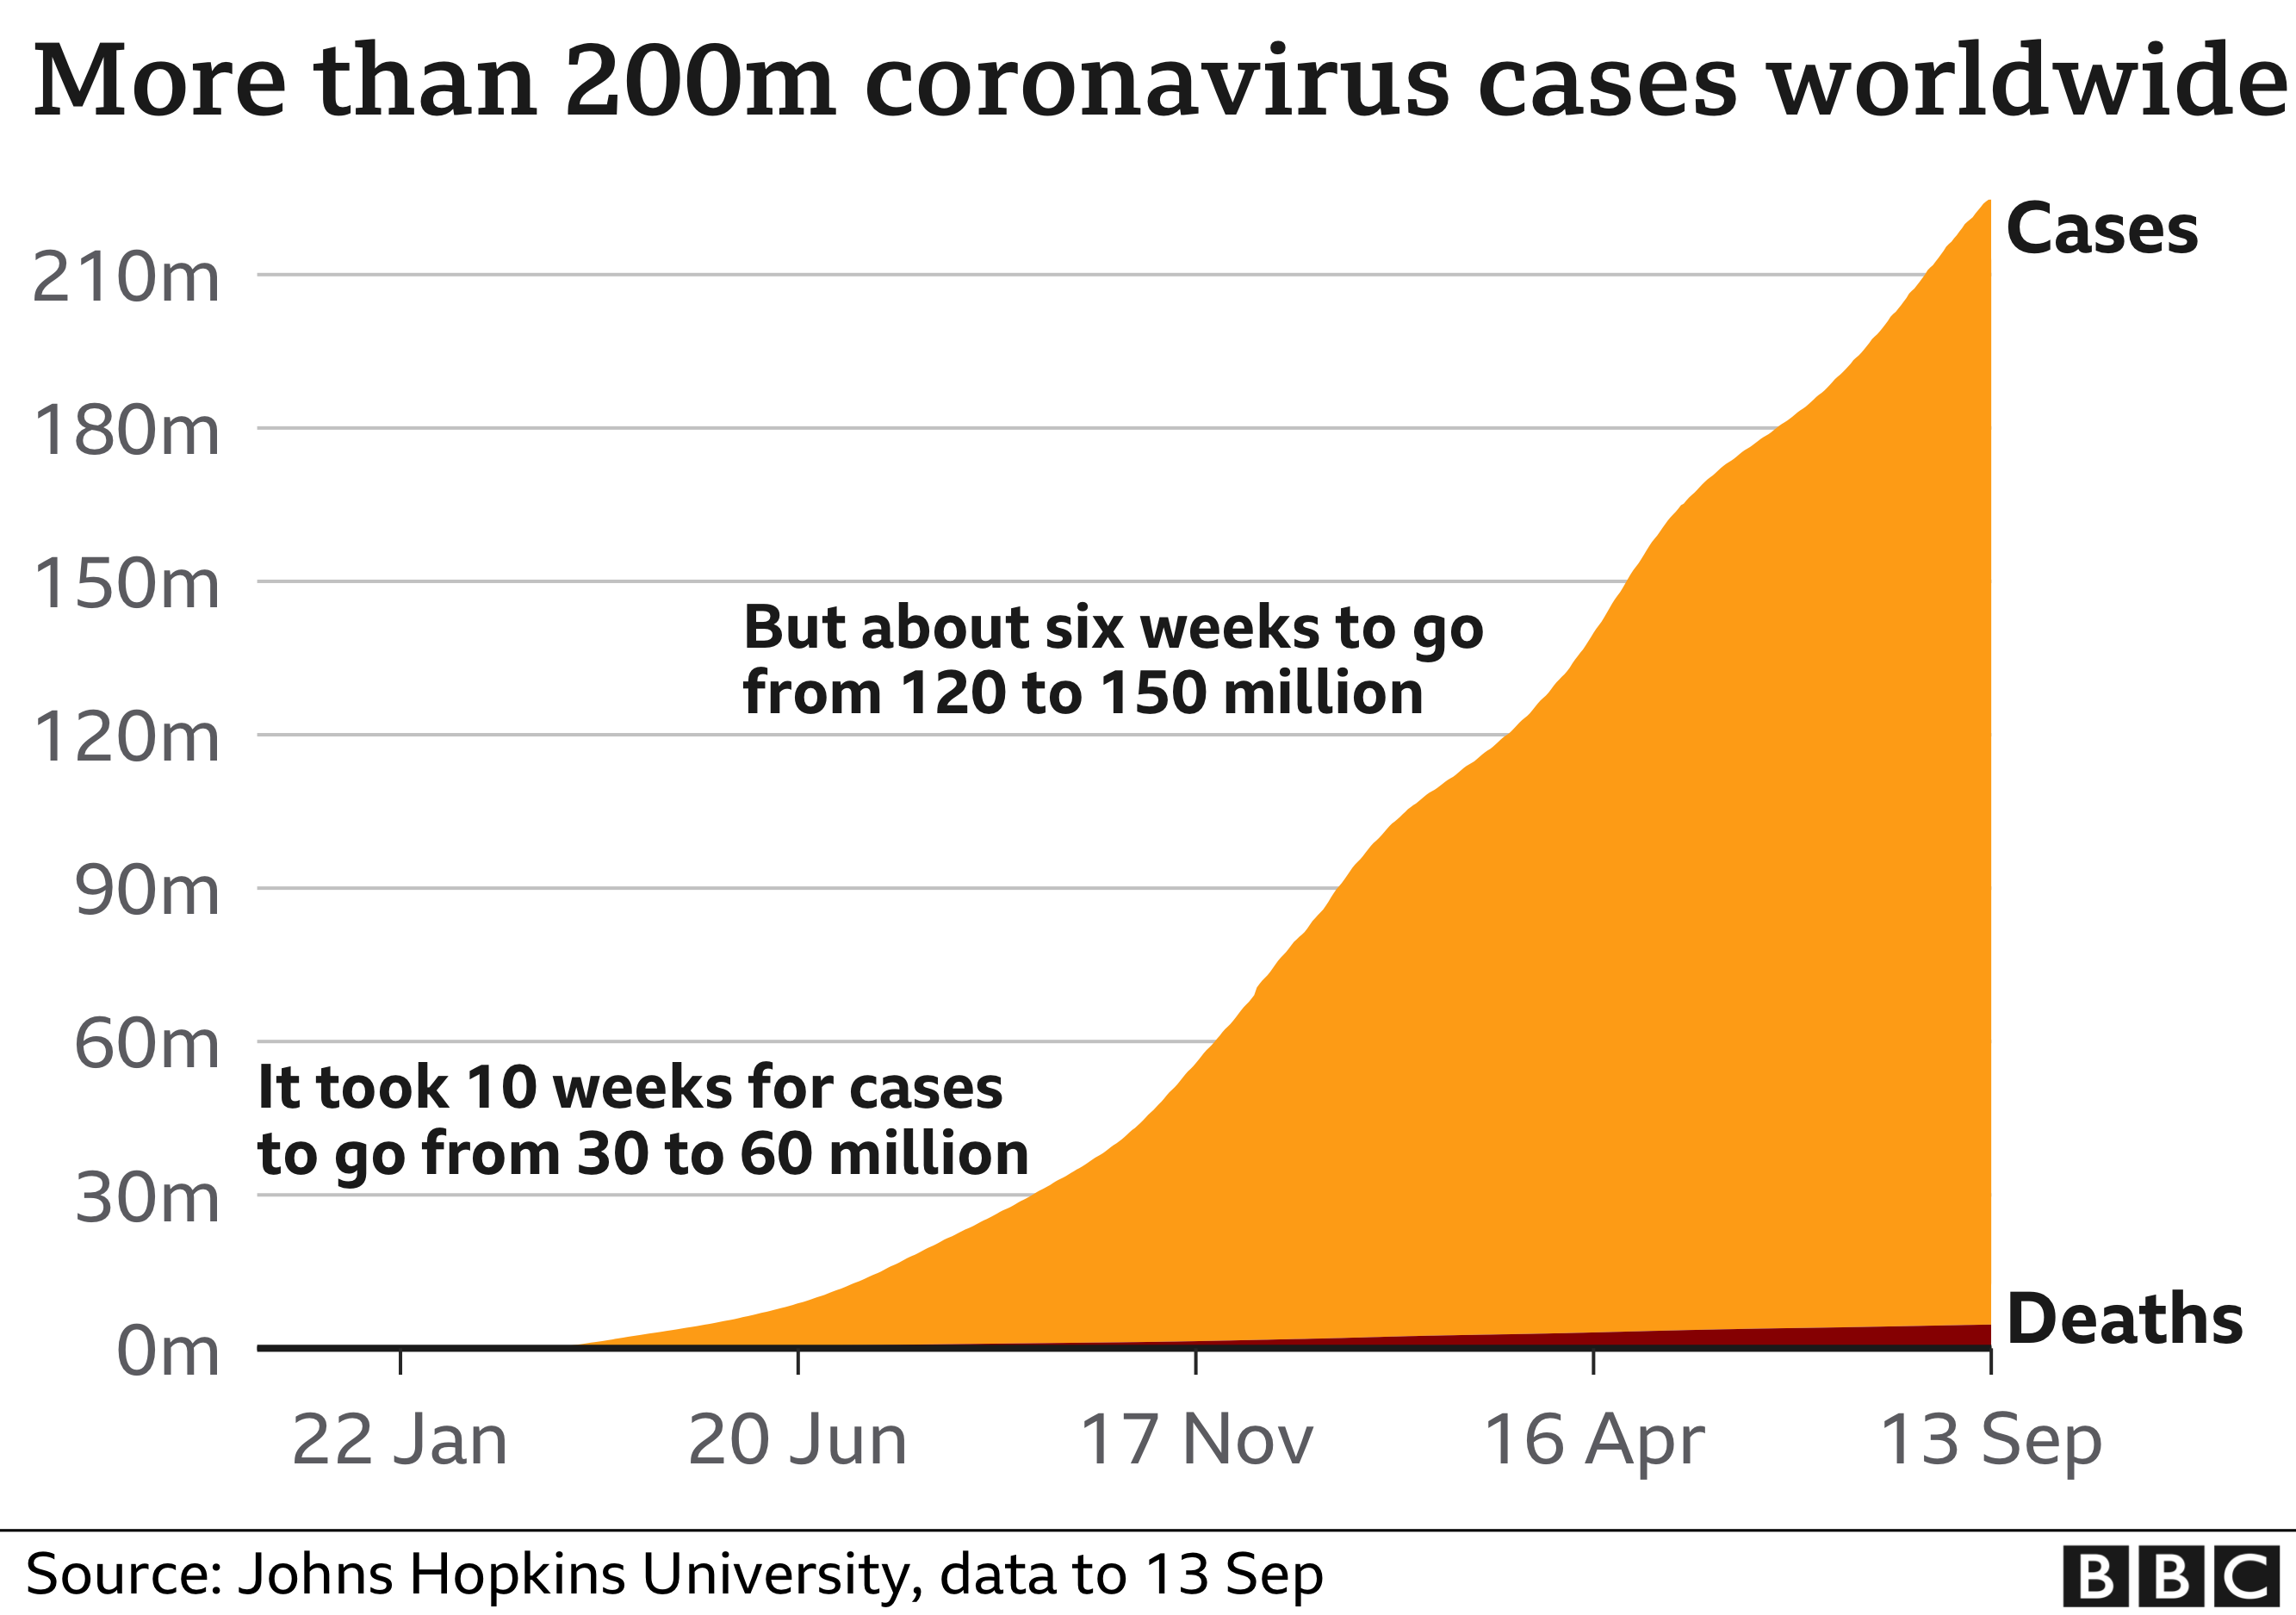 Chart showing there have been more than 220 million coronavirus cases reported worldwide. Updated 13 September.